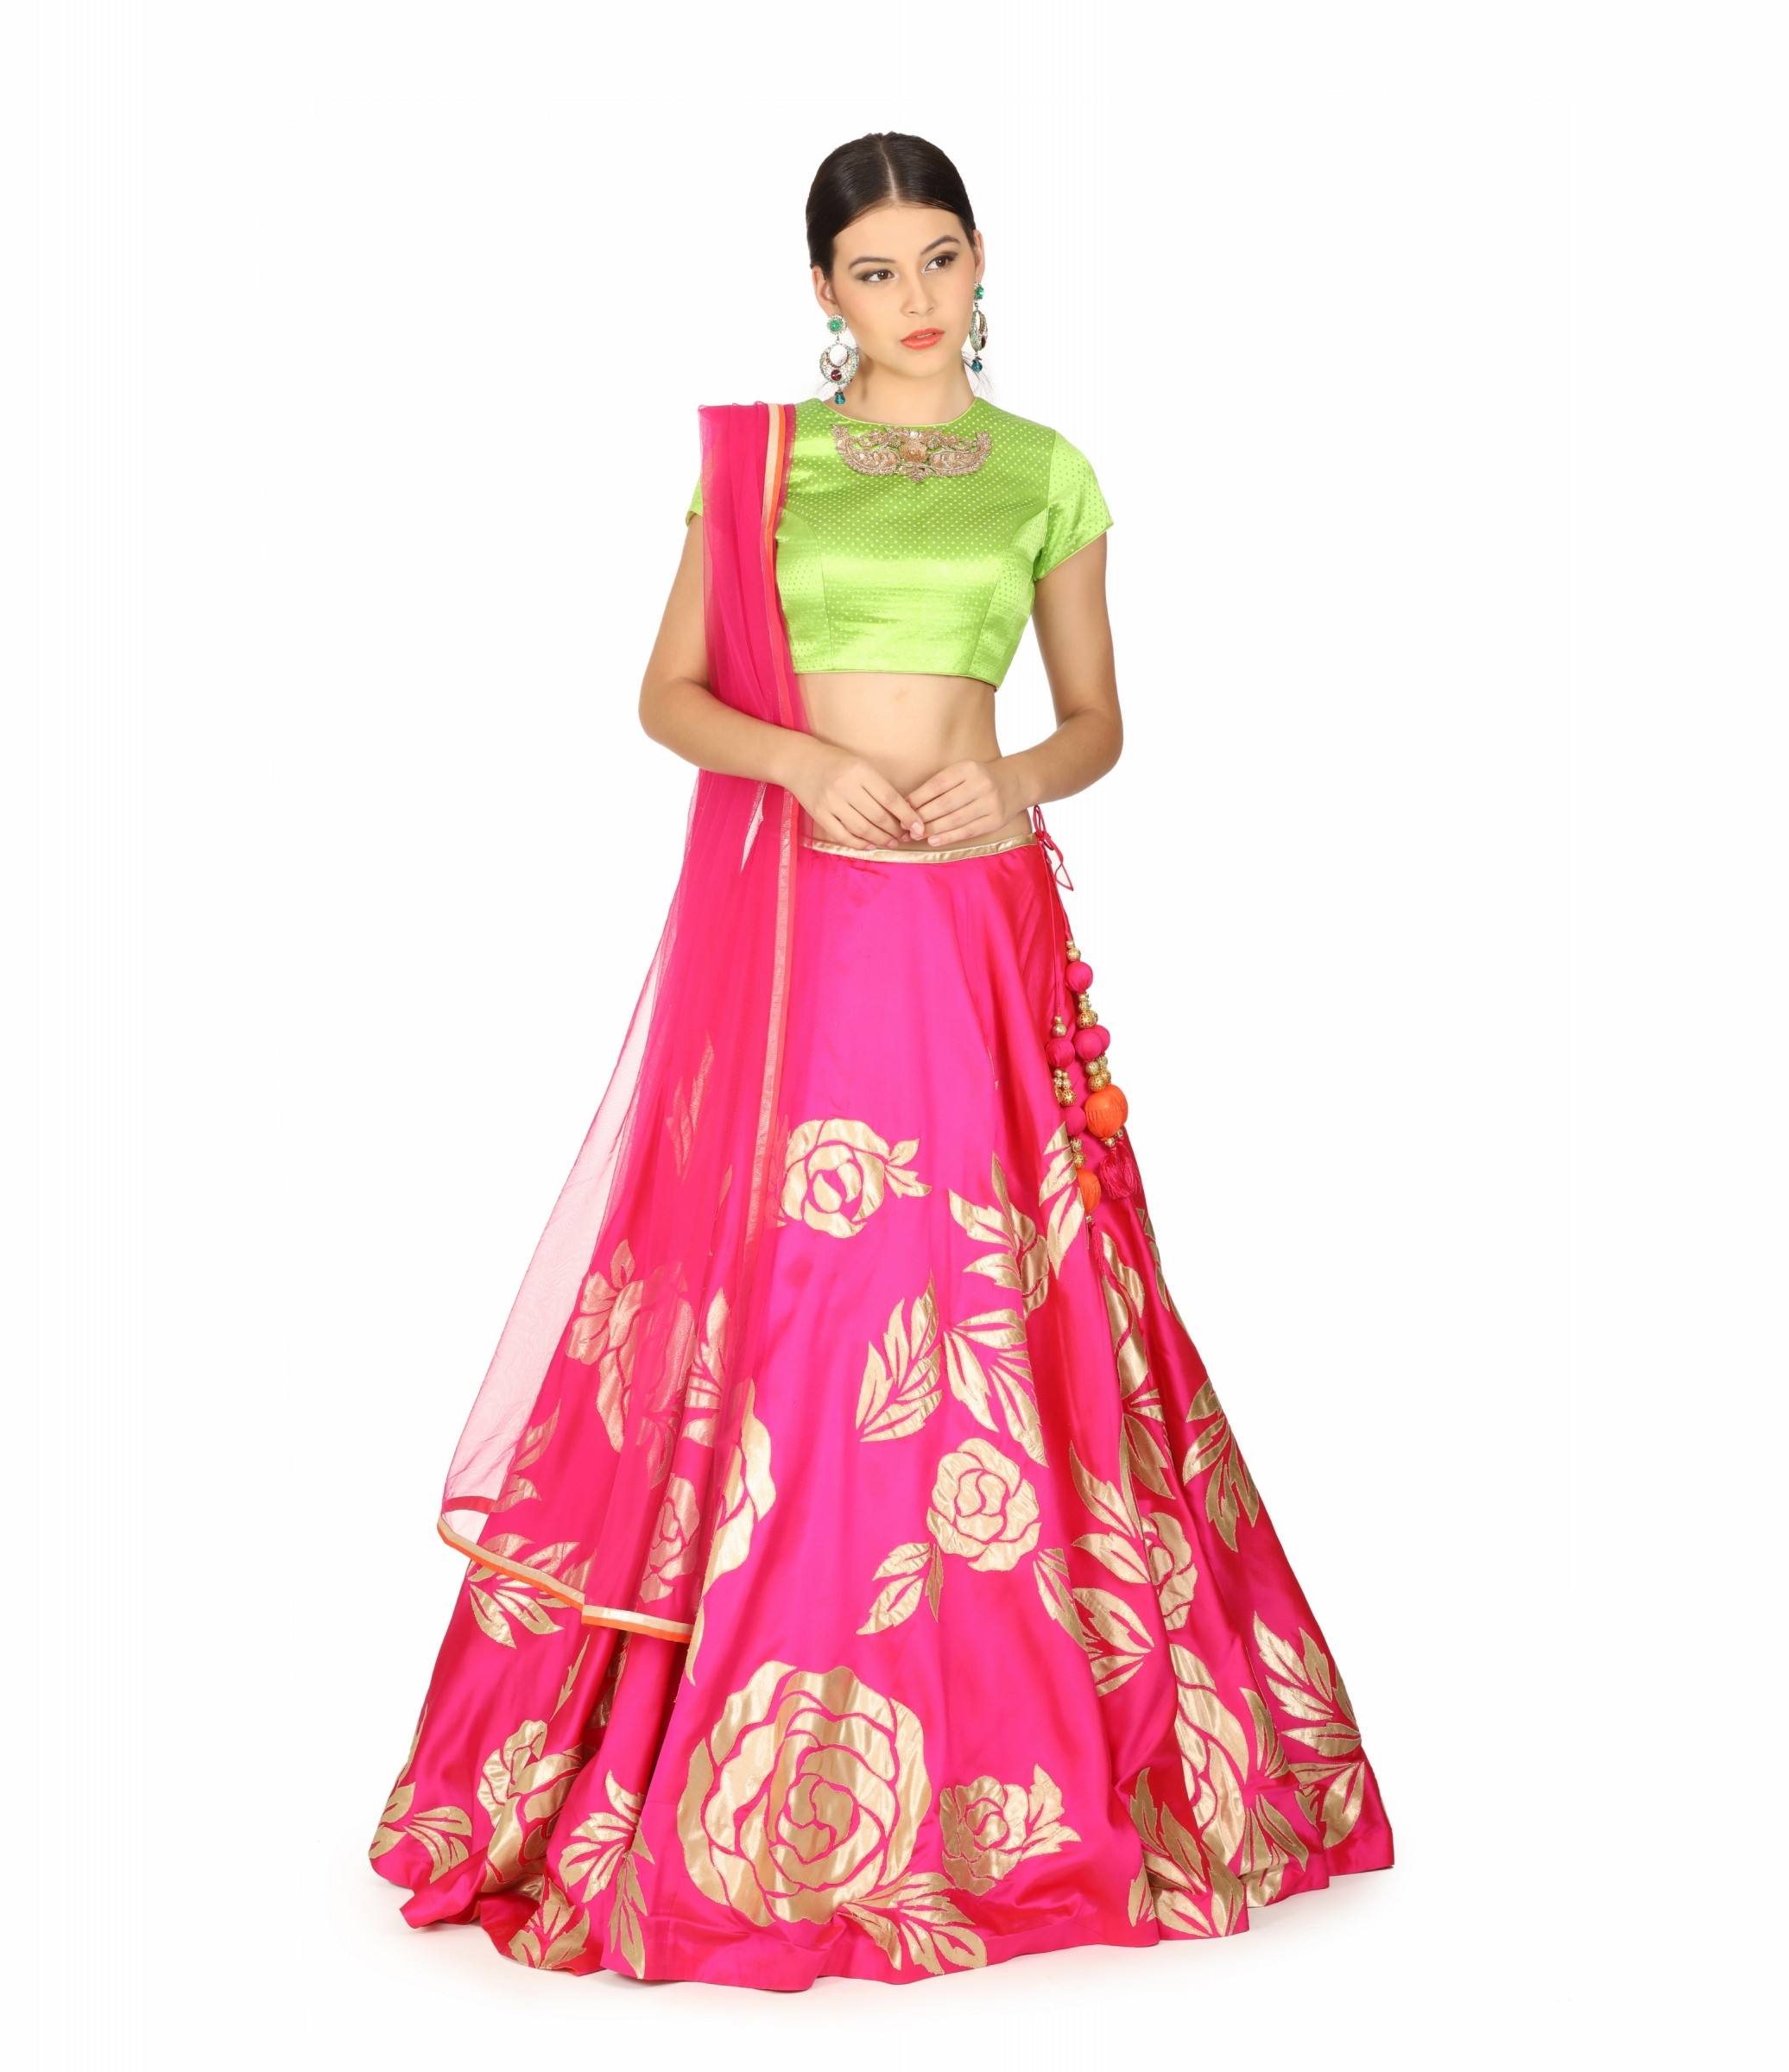 bbe97515ccc Buy Parrot Green And Pink Applique Silk Lehenga Designer Lehengas. Shipping  Worldwide.